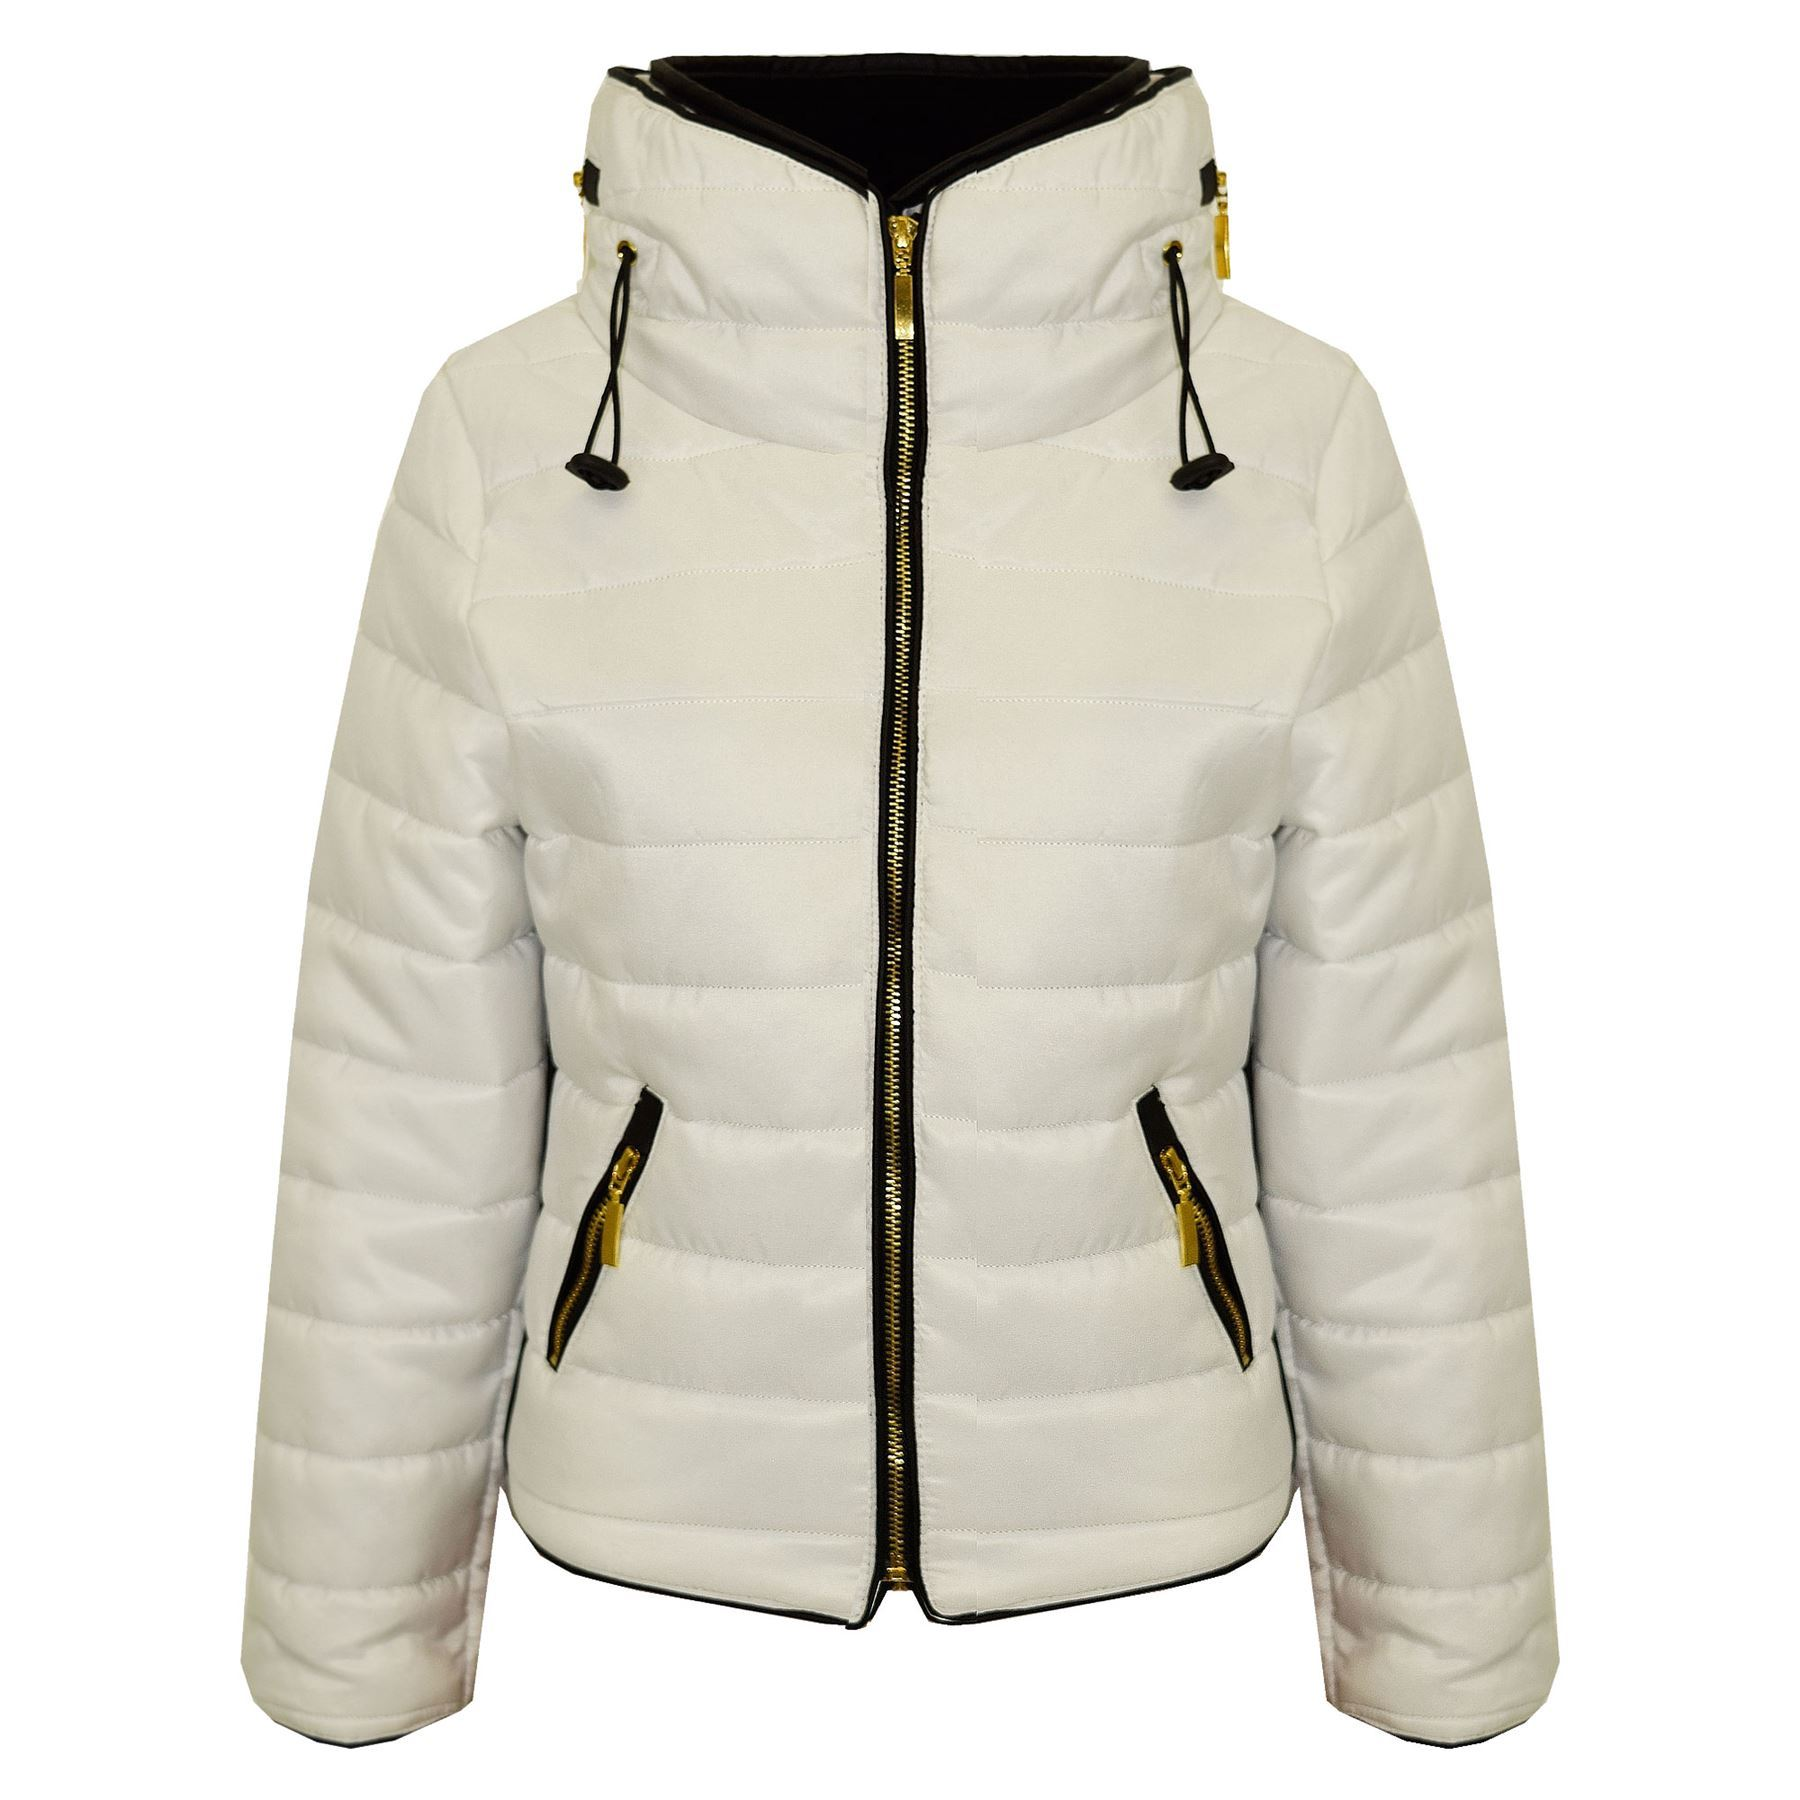 d8327bdc2 Girls Jacket Kids Padded White Puffer Bubble Faux Fur Collar Quilted ...